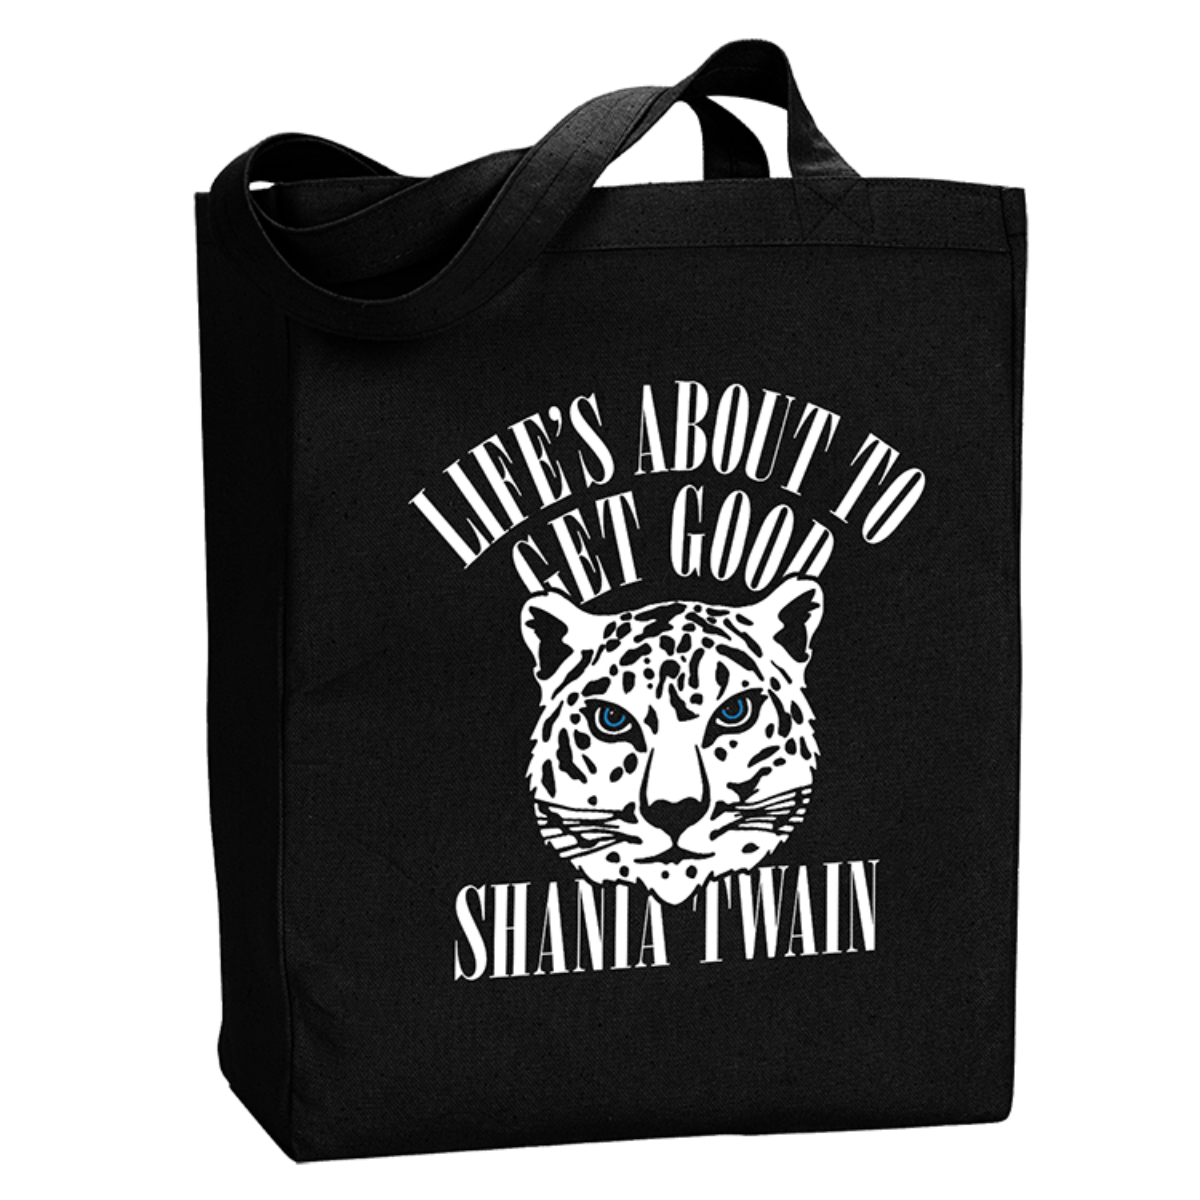 Life's Good Black Tote Bag